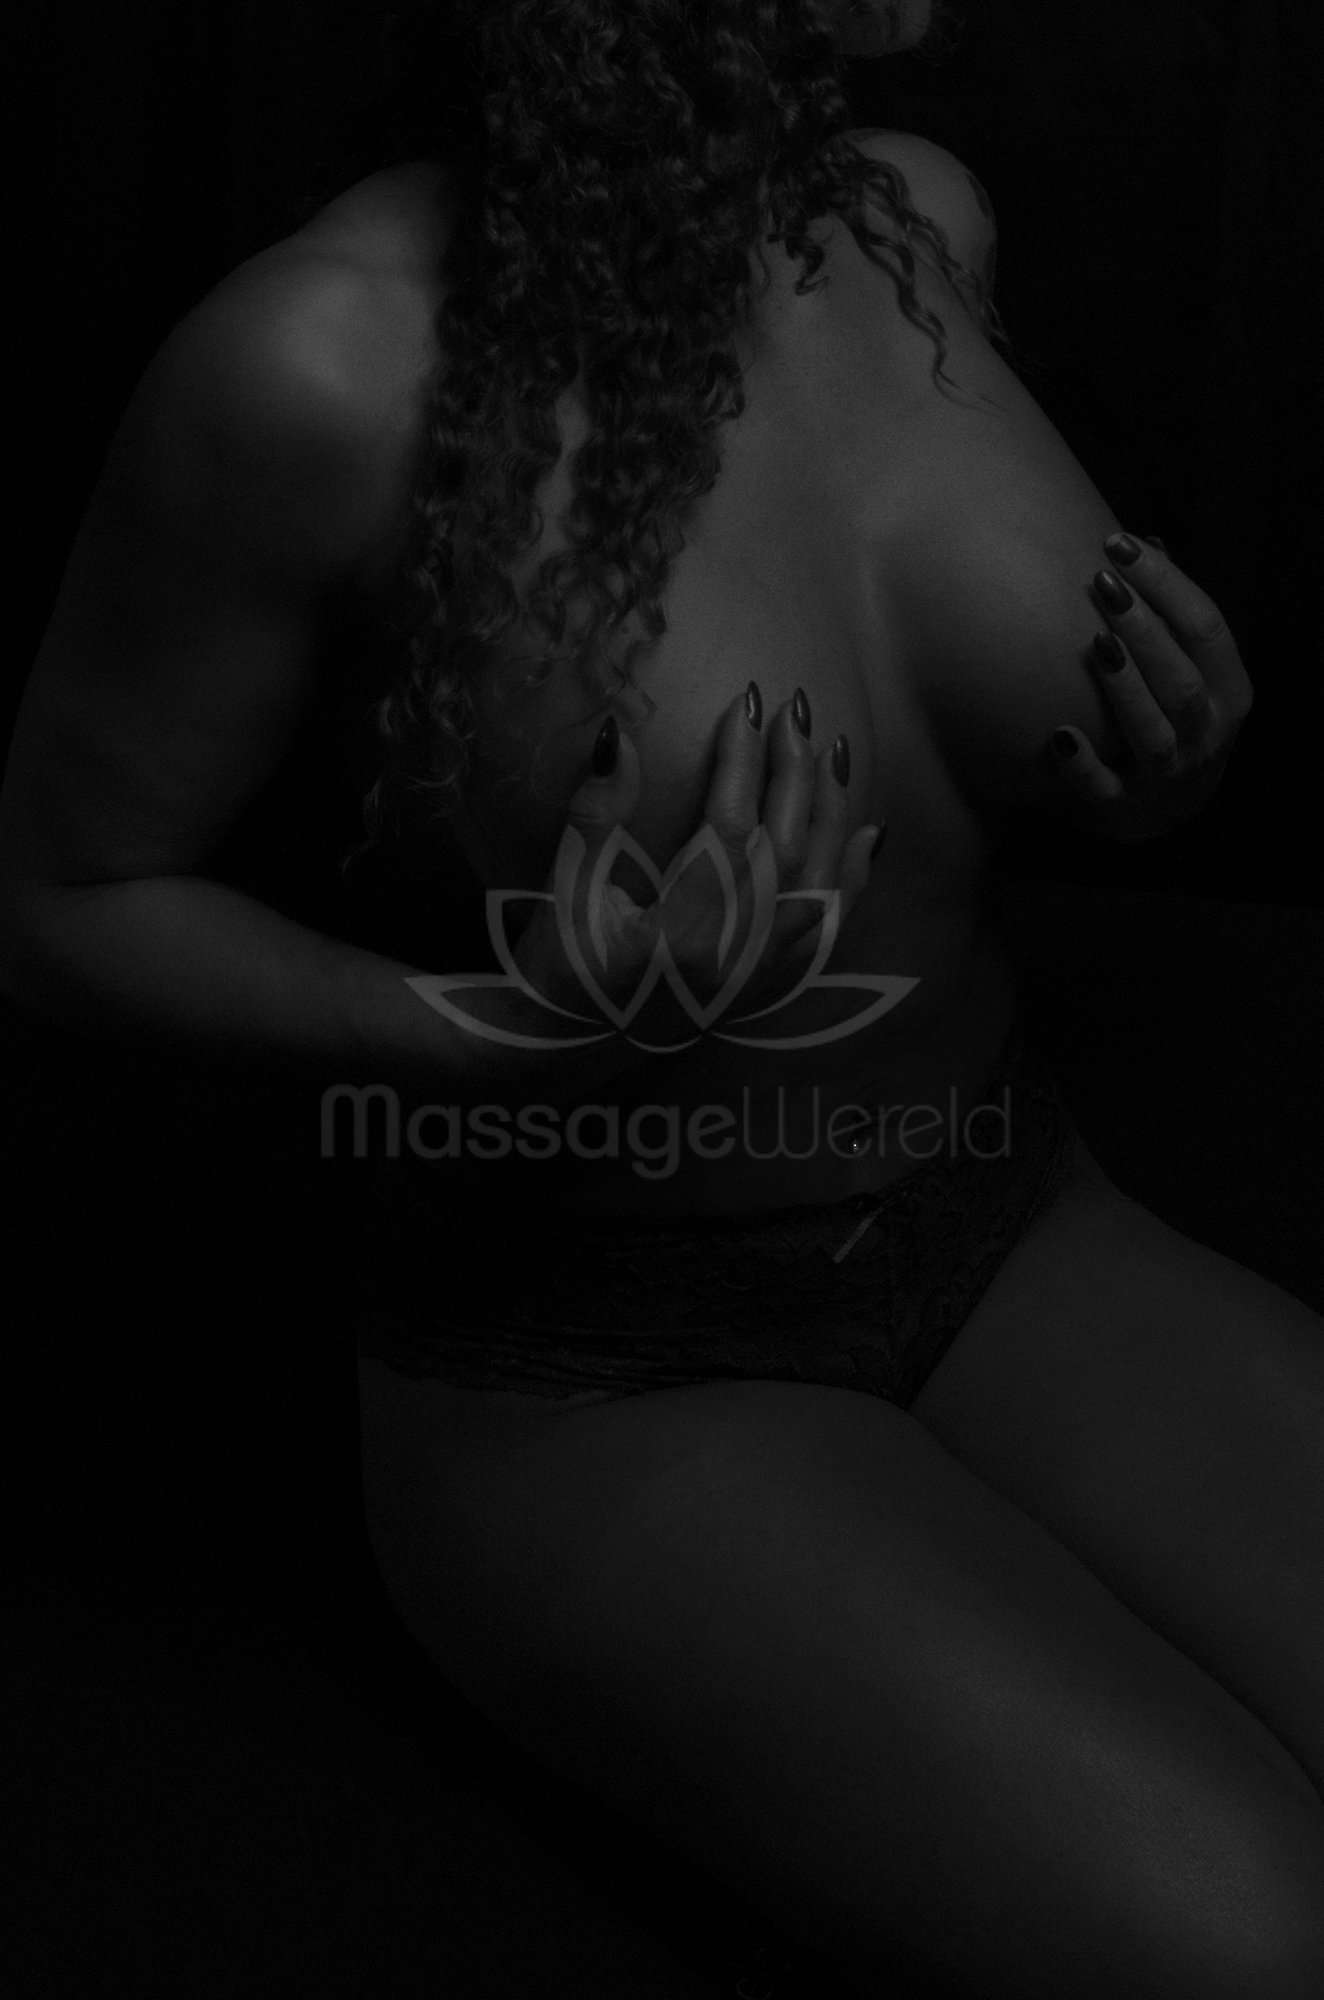 hookers massage massage happy end nijmegen